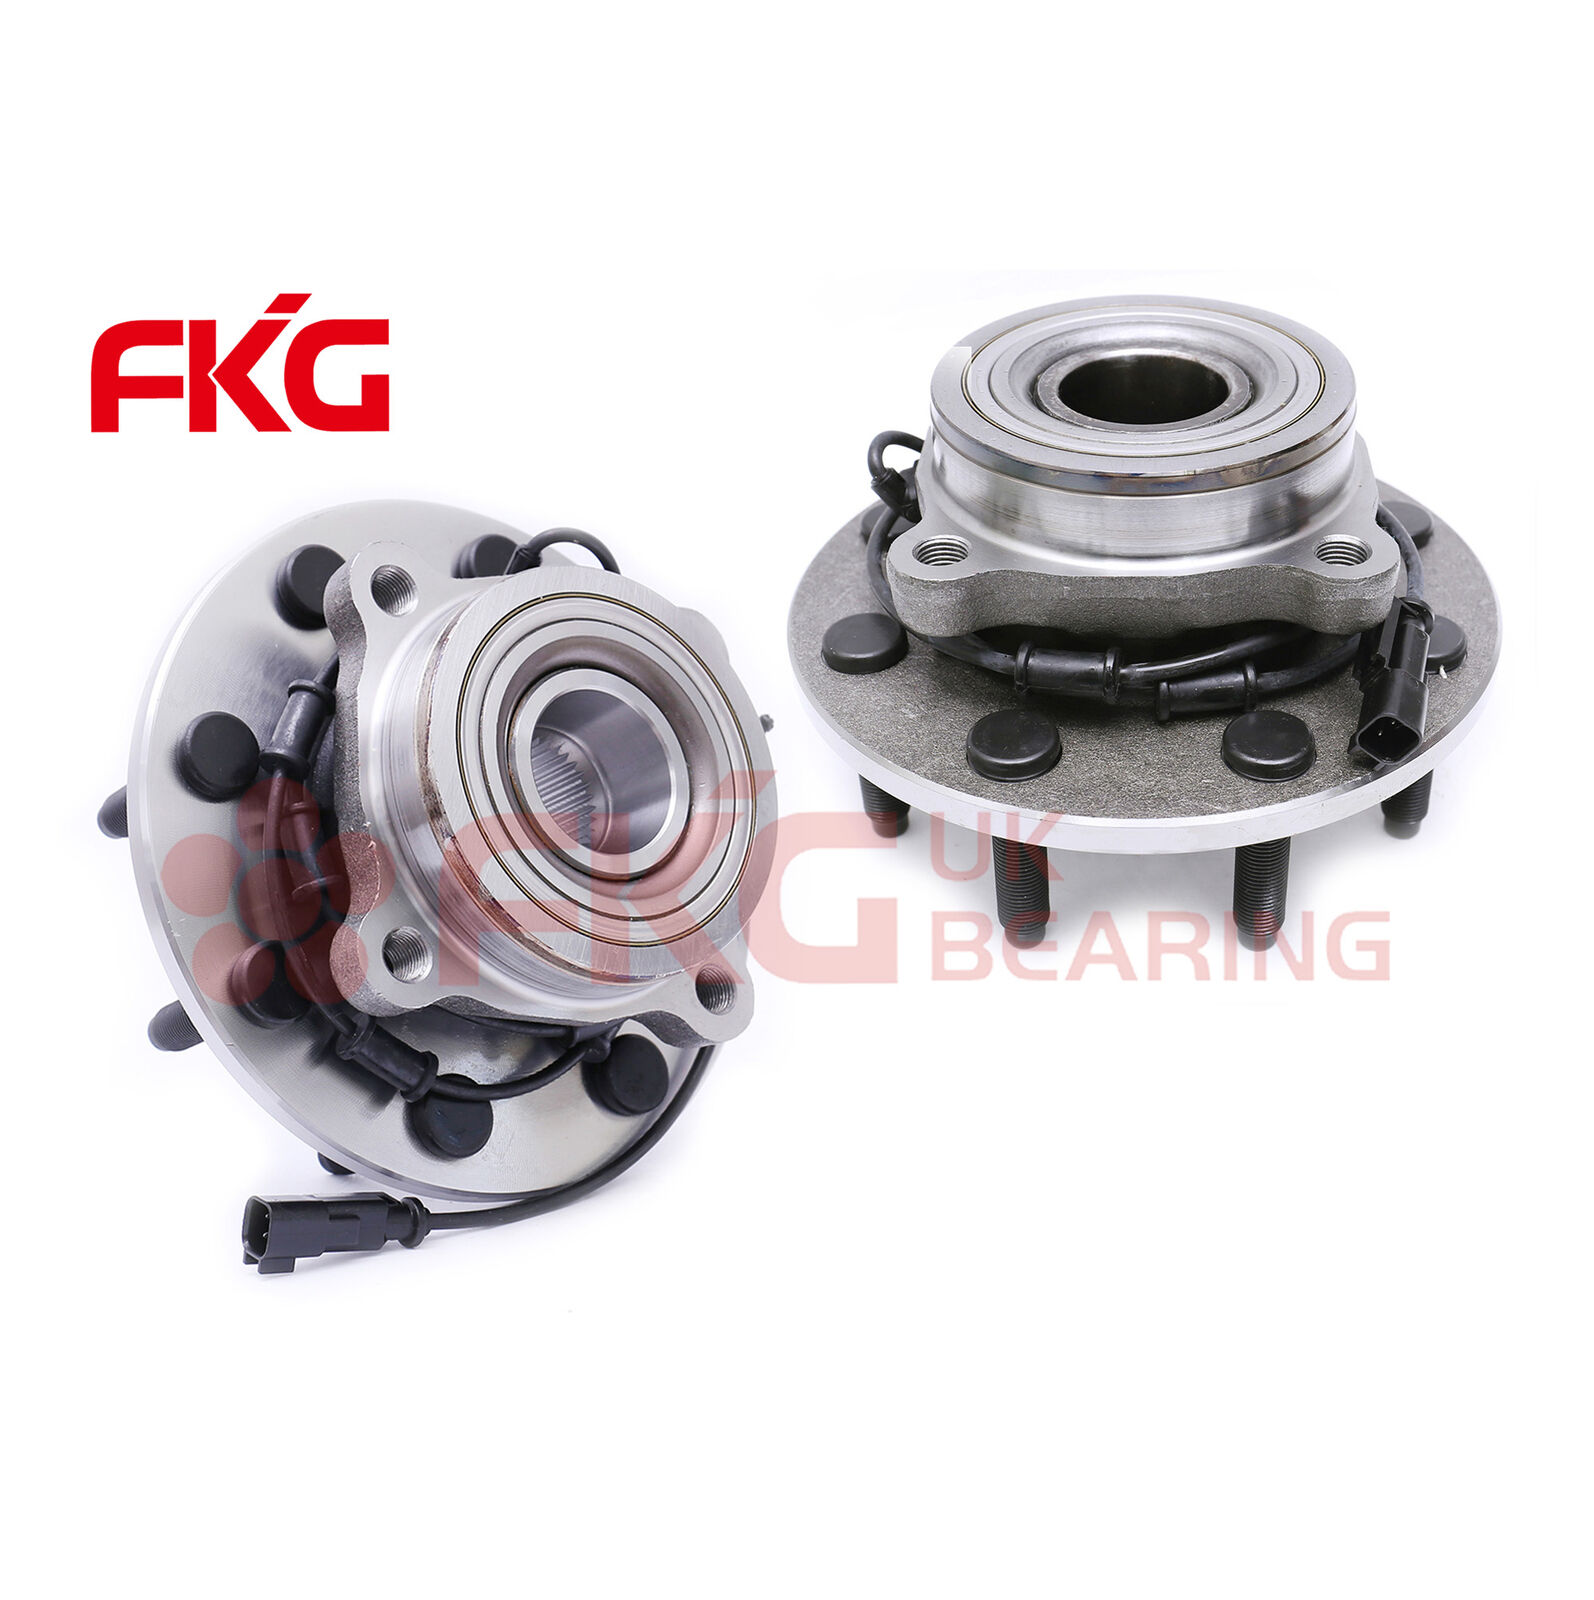 3500 8lugs w//ABS 2500 PAROD 515101 4X4 4WD Front Wheel Hub /& Bearing Assembly Compatible with 2006-2008 Dodge Ram 1500